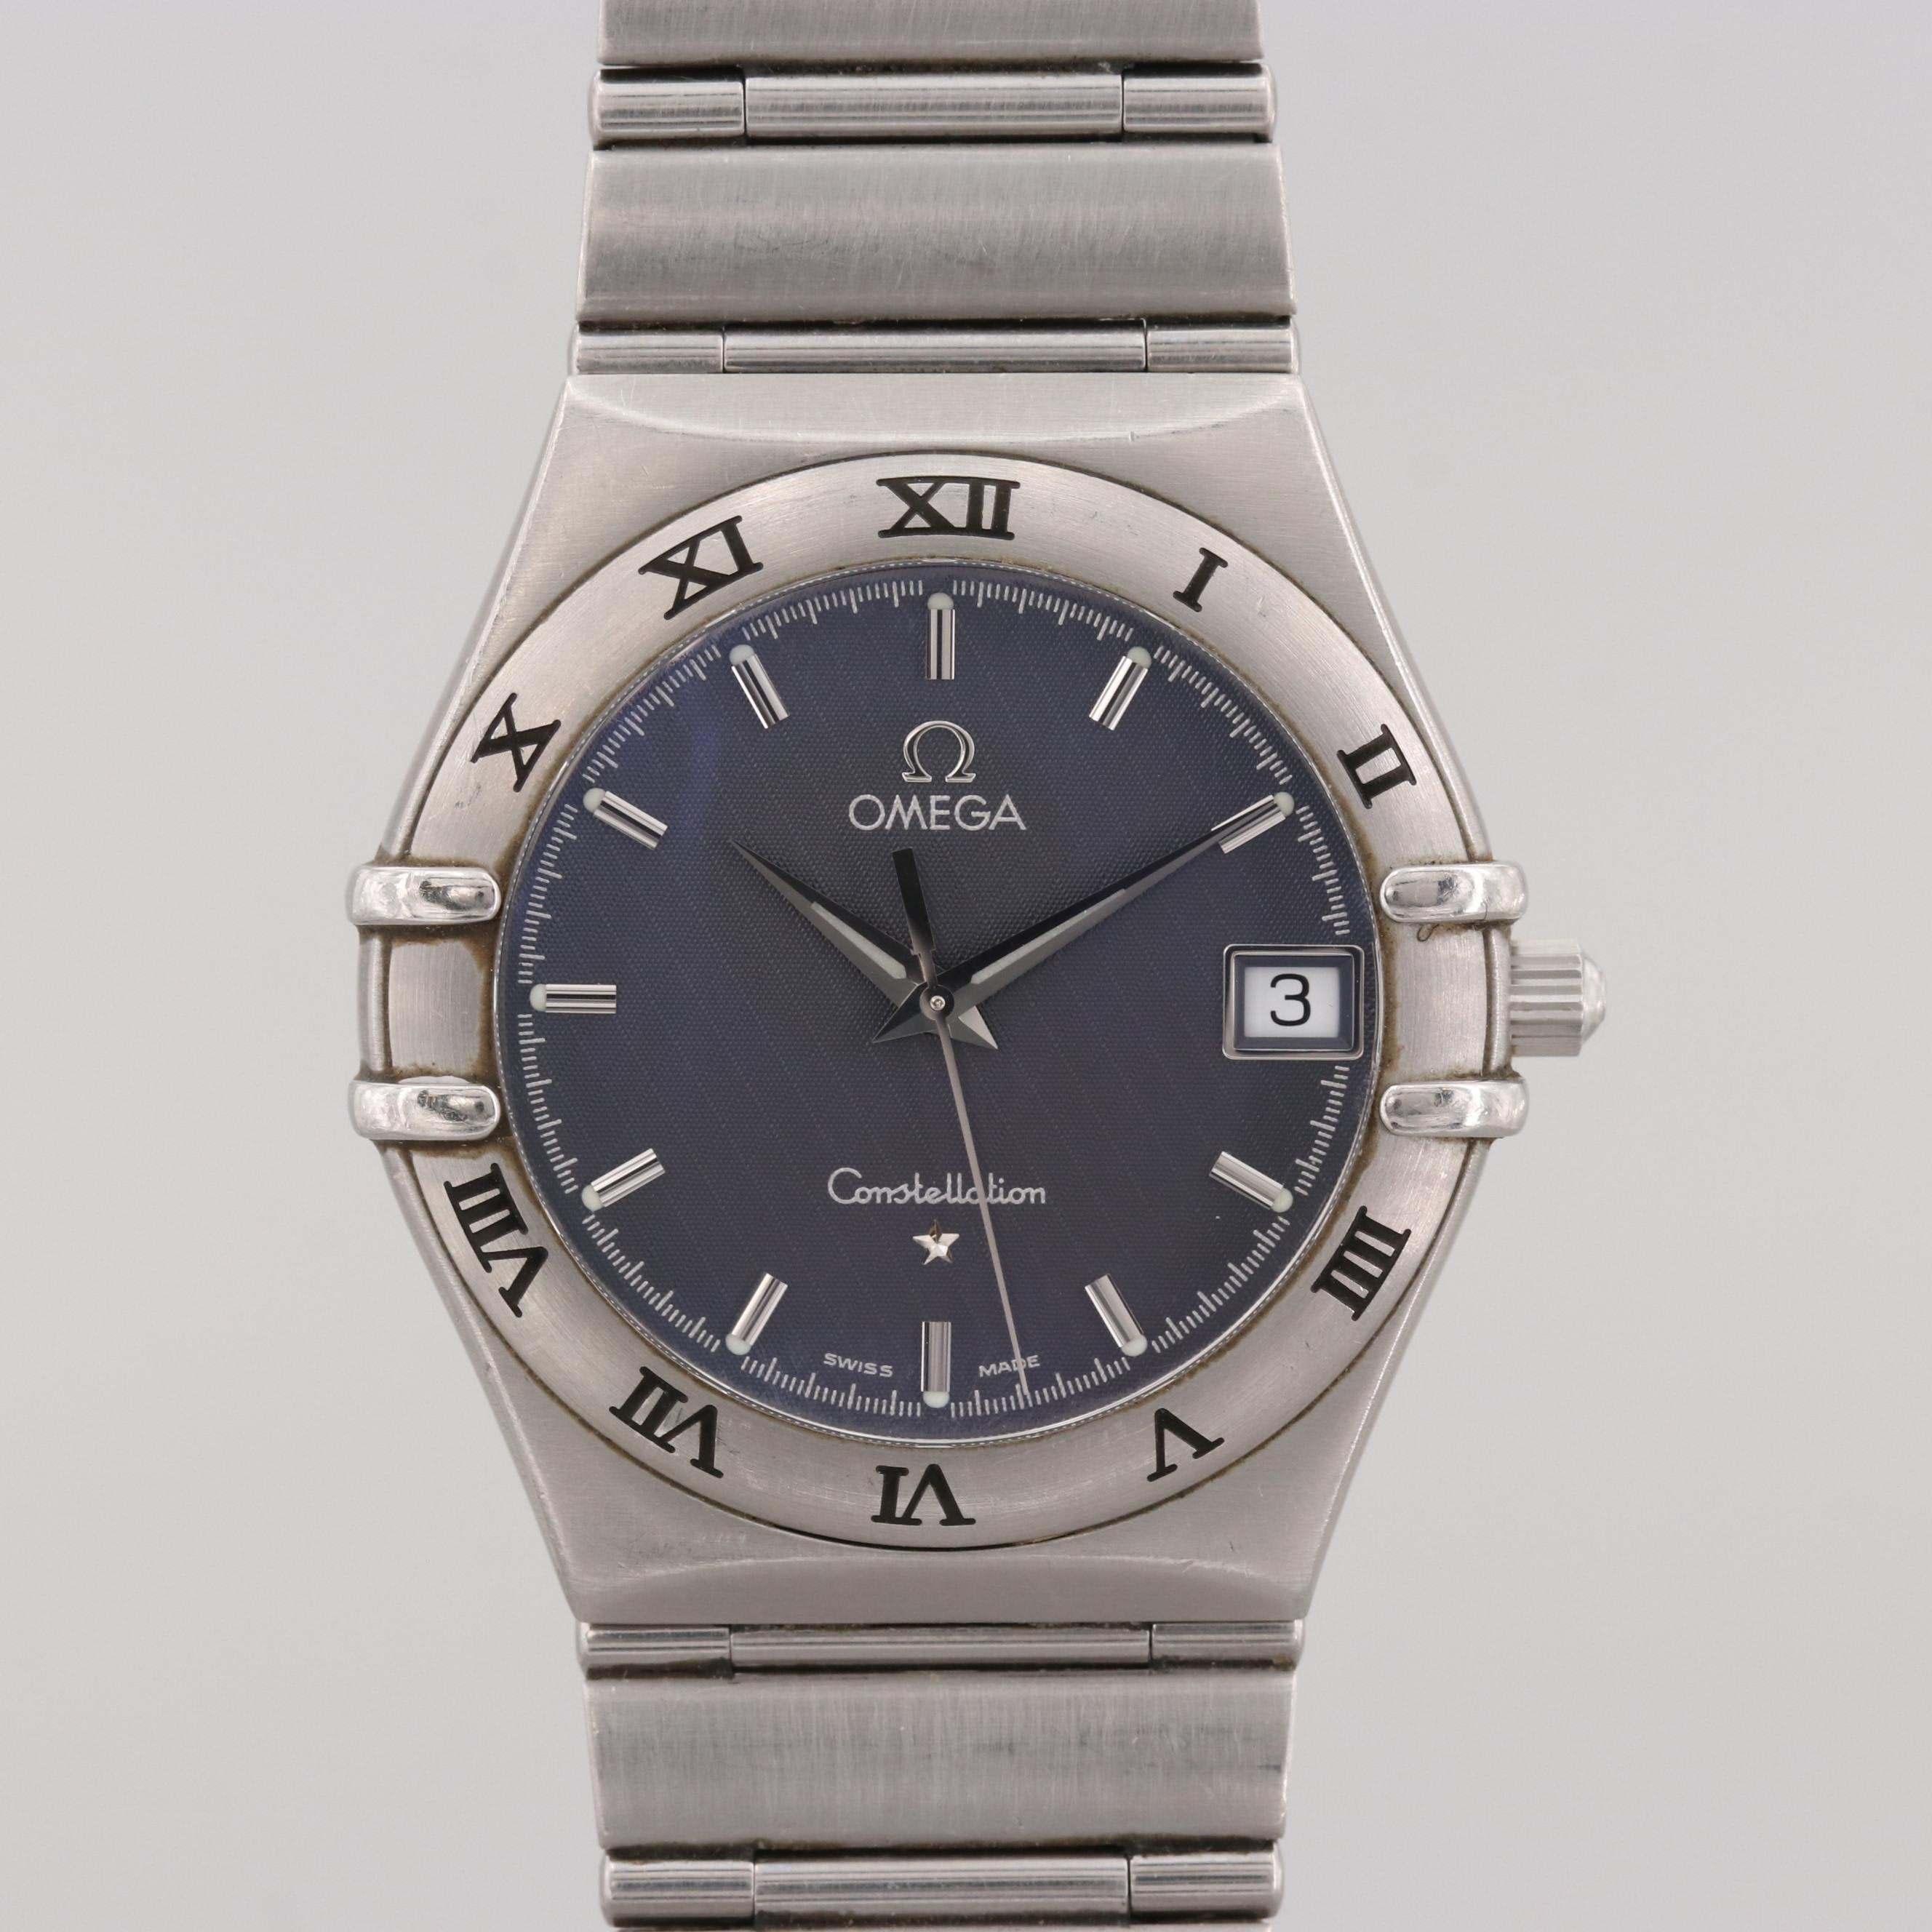 Omega Constellation Stainless Steel Quartz Wristwatch With Date Window